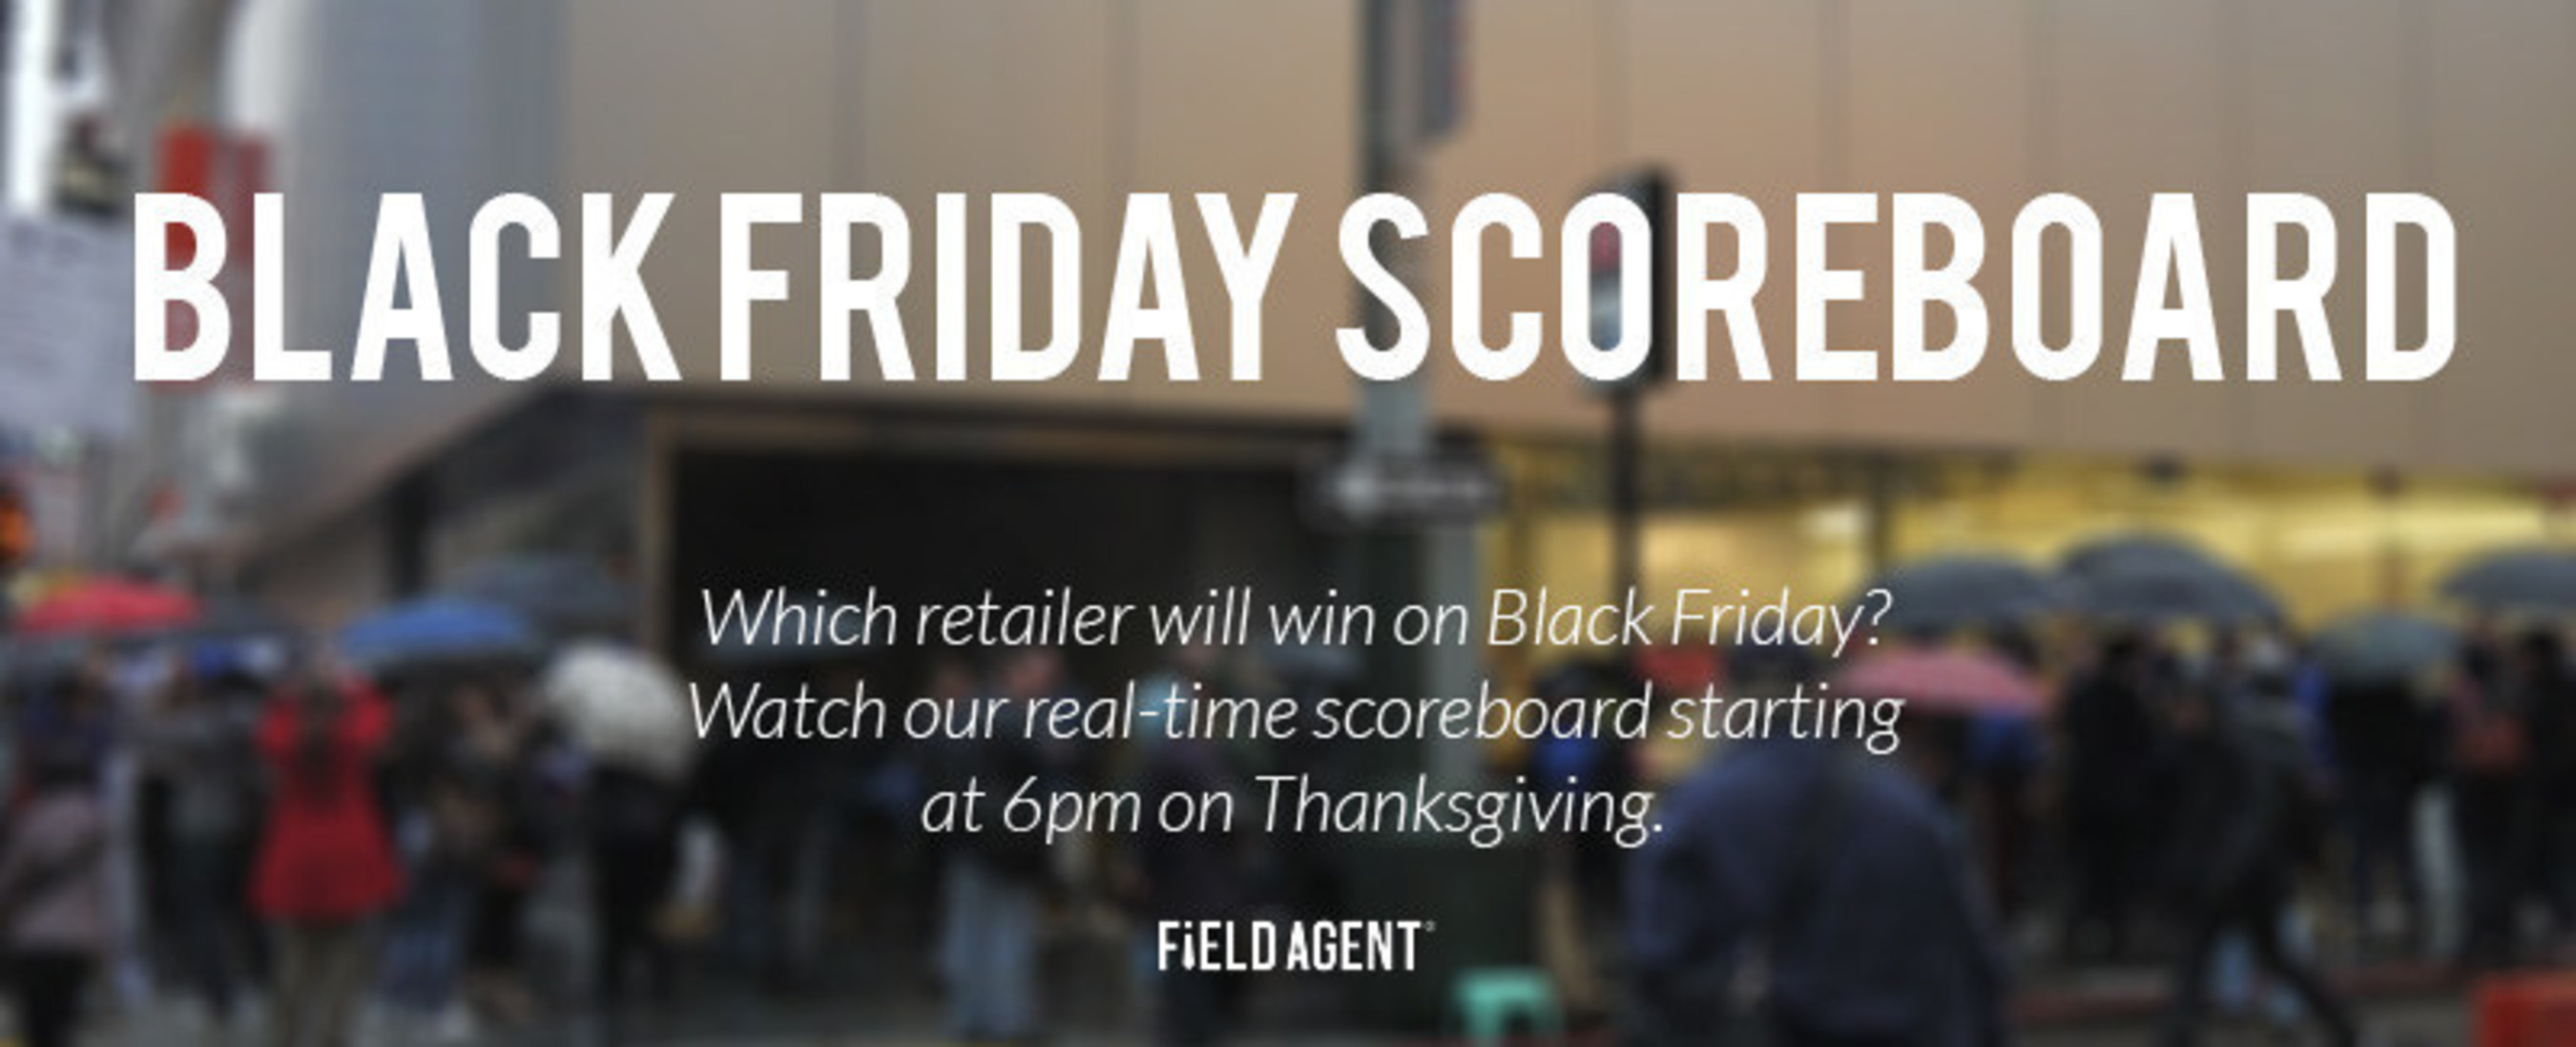 Where Is America Shopping On Black Friday? The Black Friday Scoreboard Tells Us